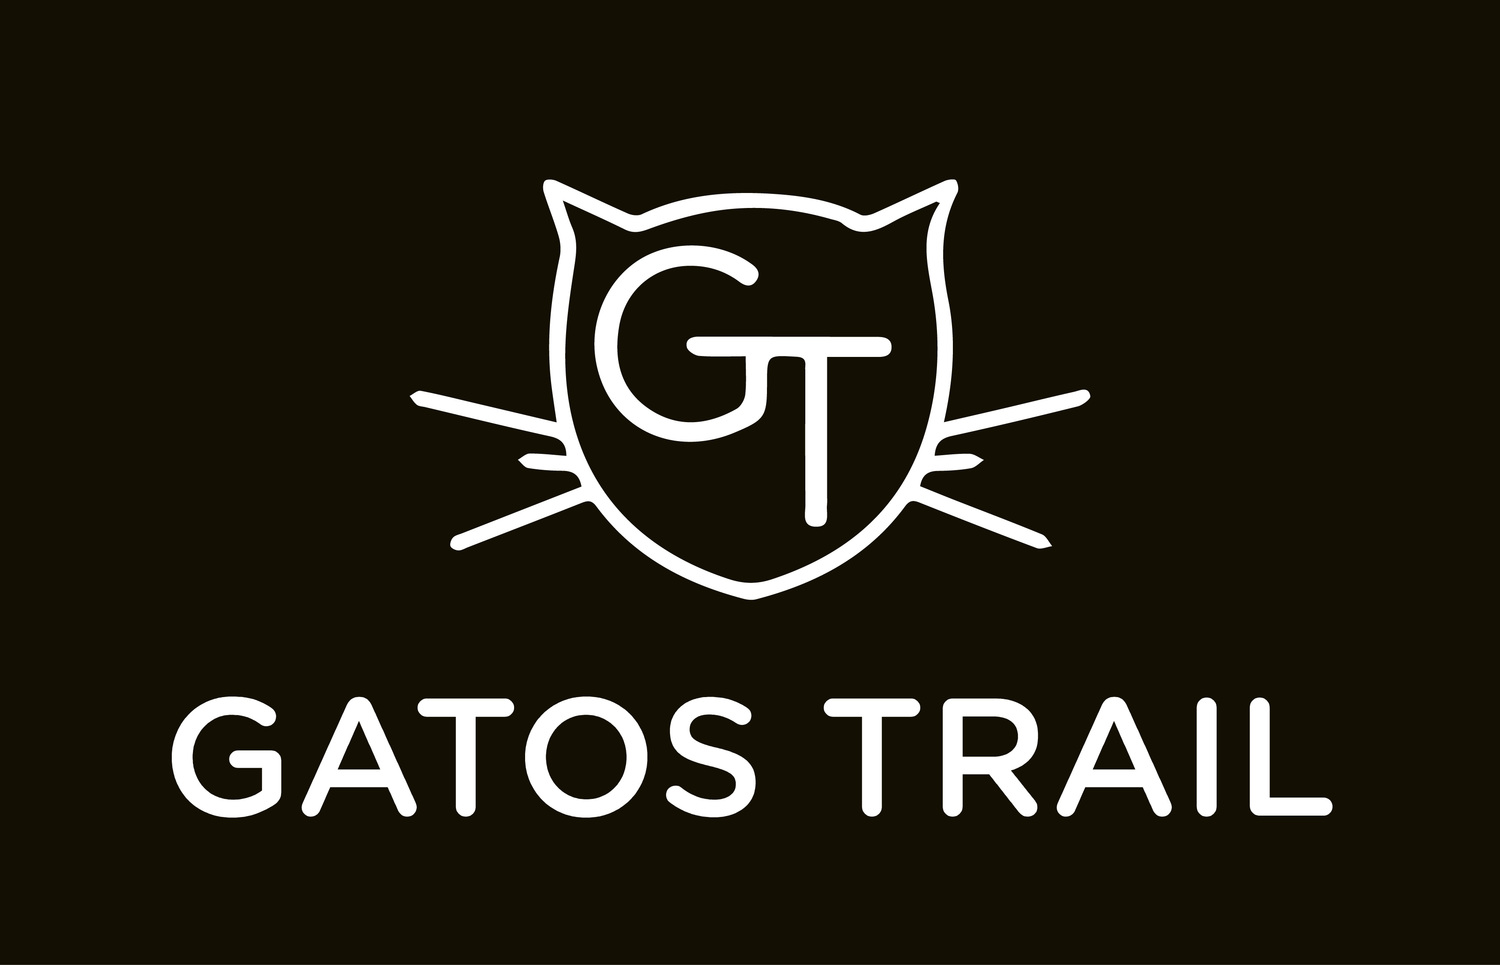 GATOS TRAIL